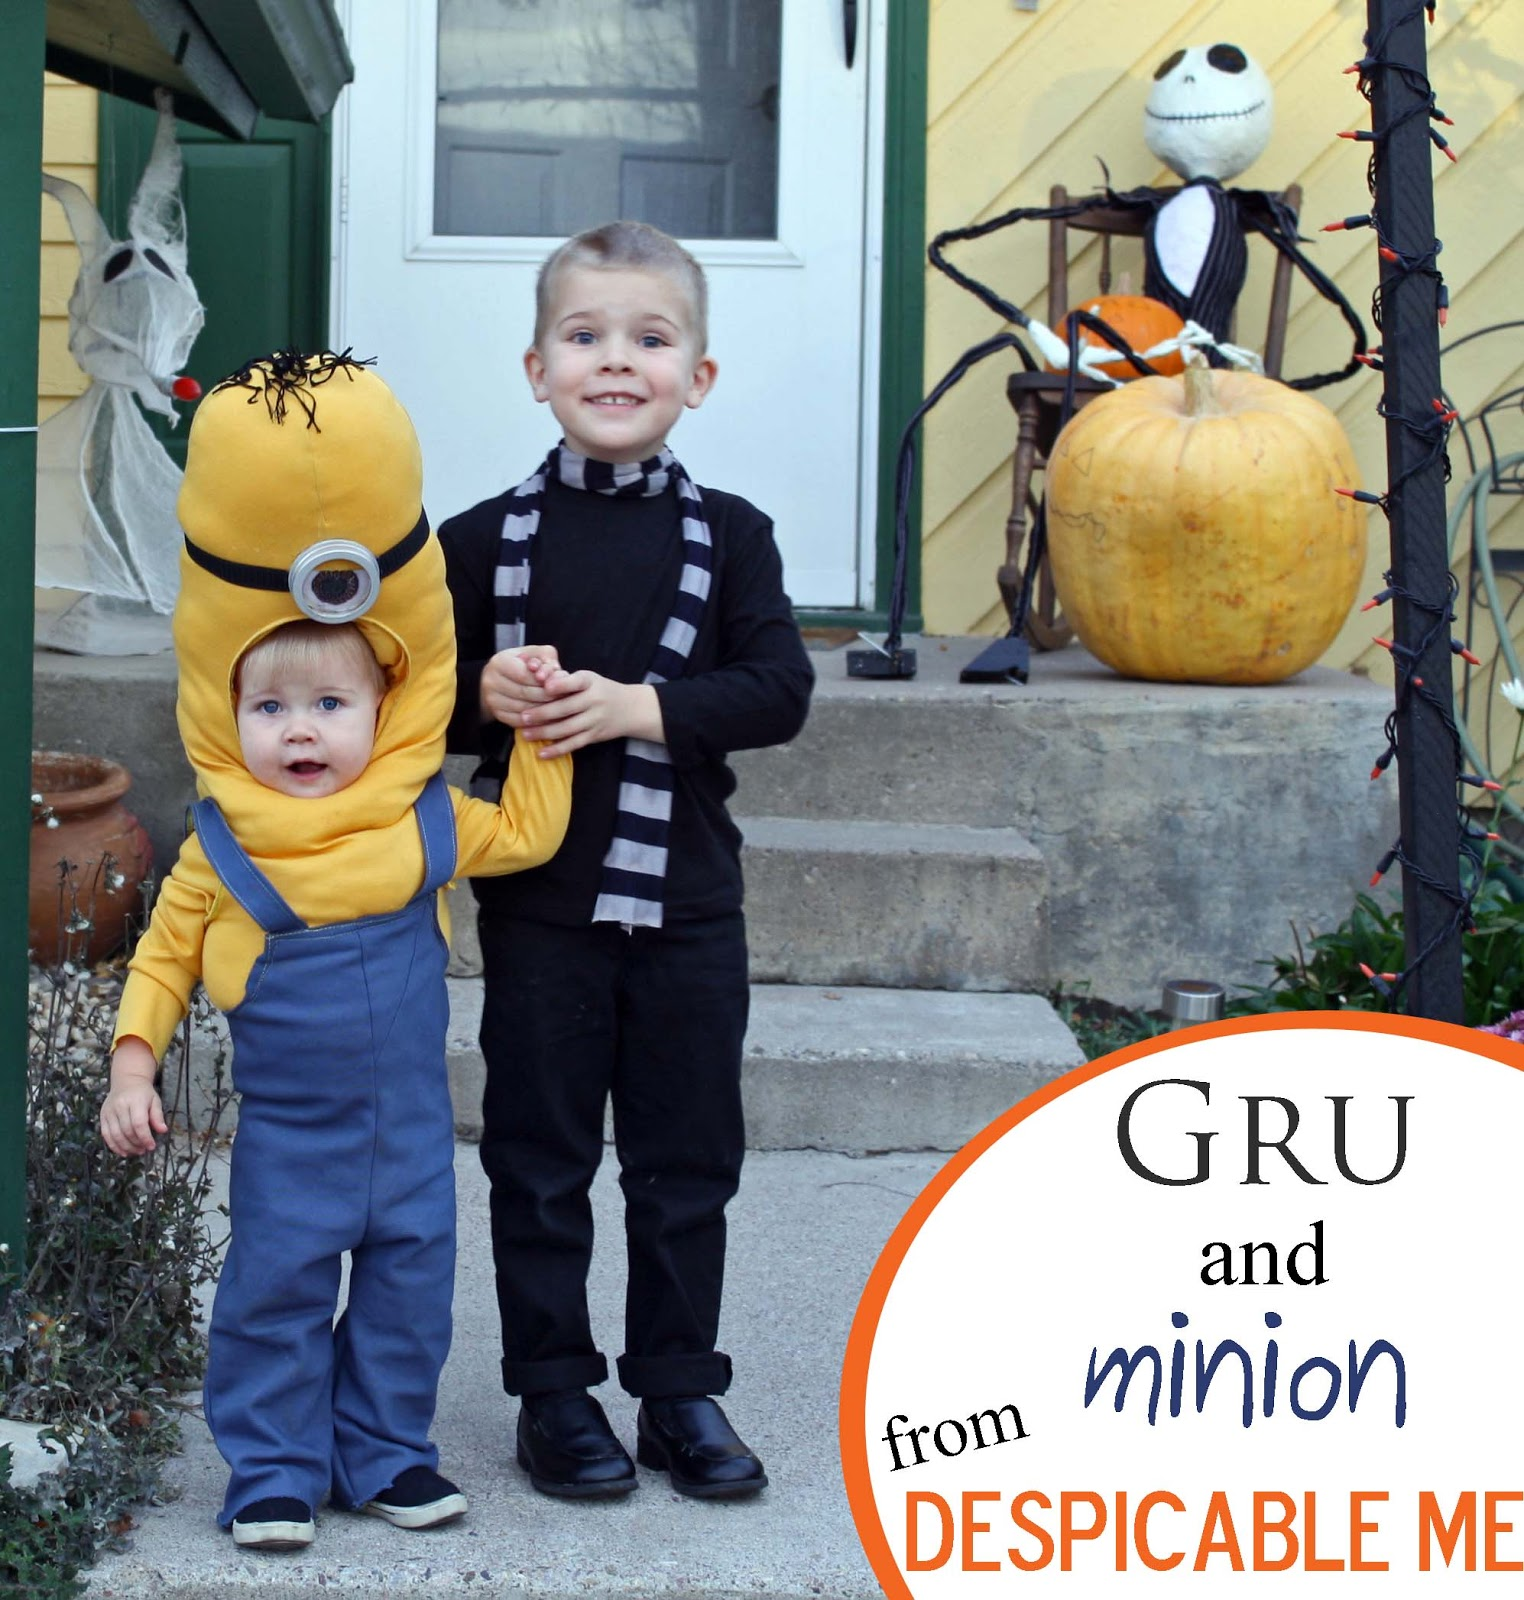 So for the kids we had Gru and a minion from the movie Despicable Me.  sc 1 st  Running With Scissors & Running With Scissors: Gru and Minion Halloween Costume